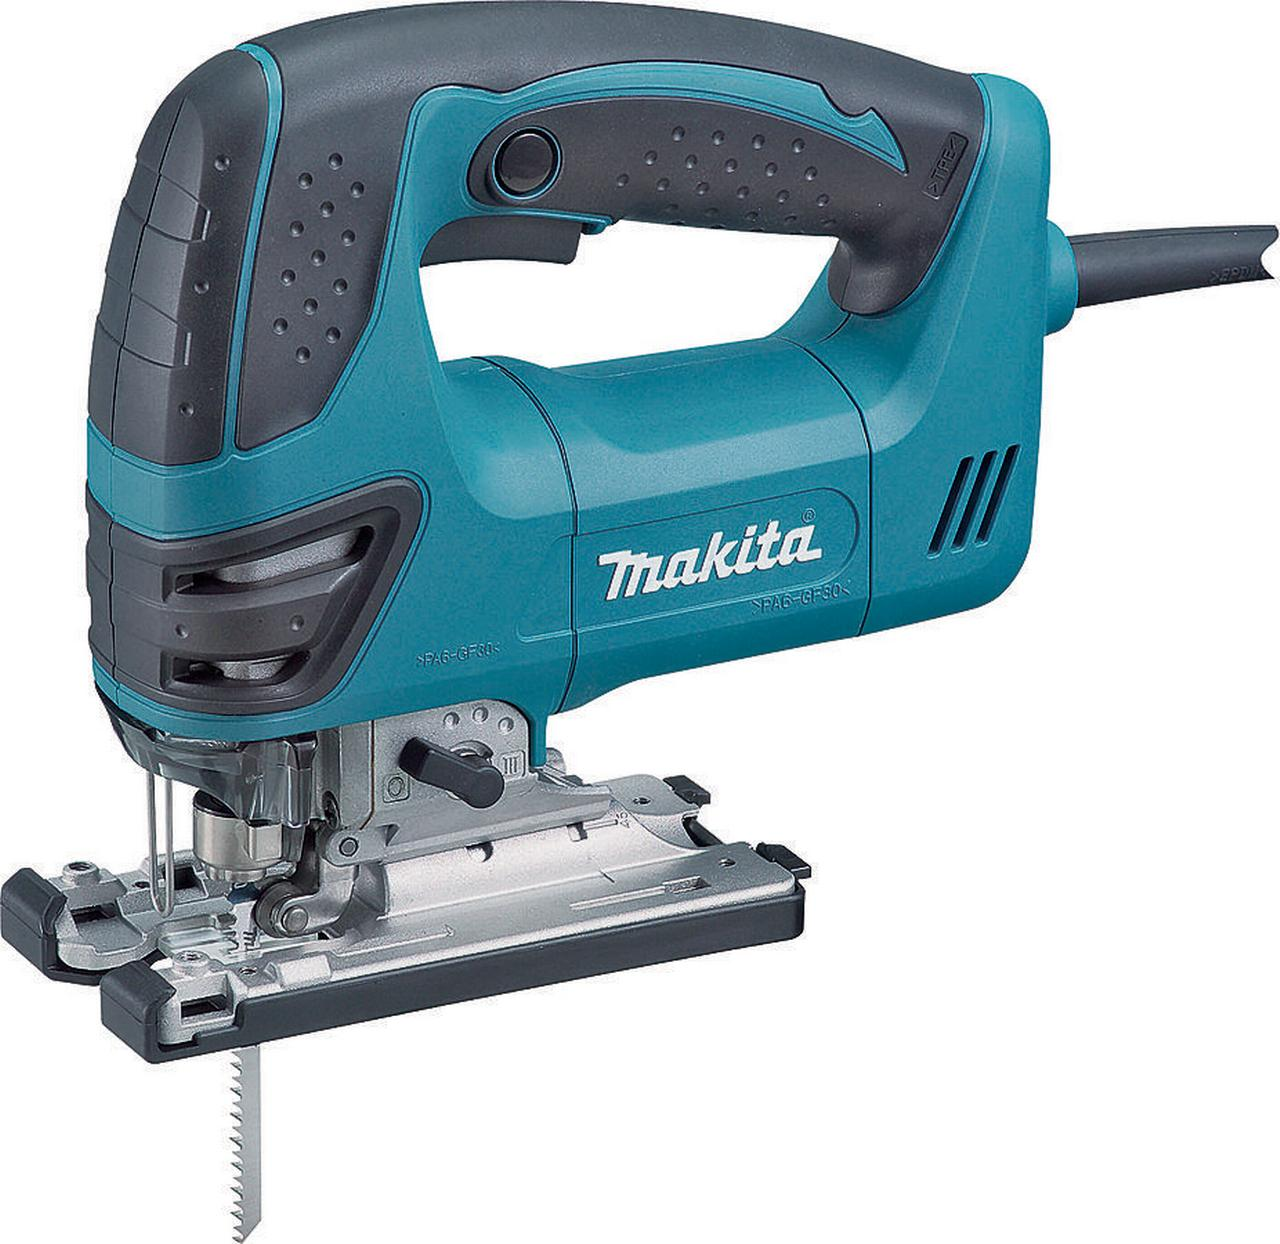 Makita 4350FCT Orbital Action Corded Jig Saw with LED Light, 120 V, 6.3 A, 1 in Stroke